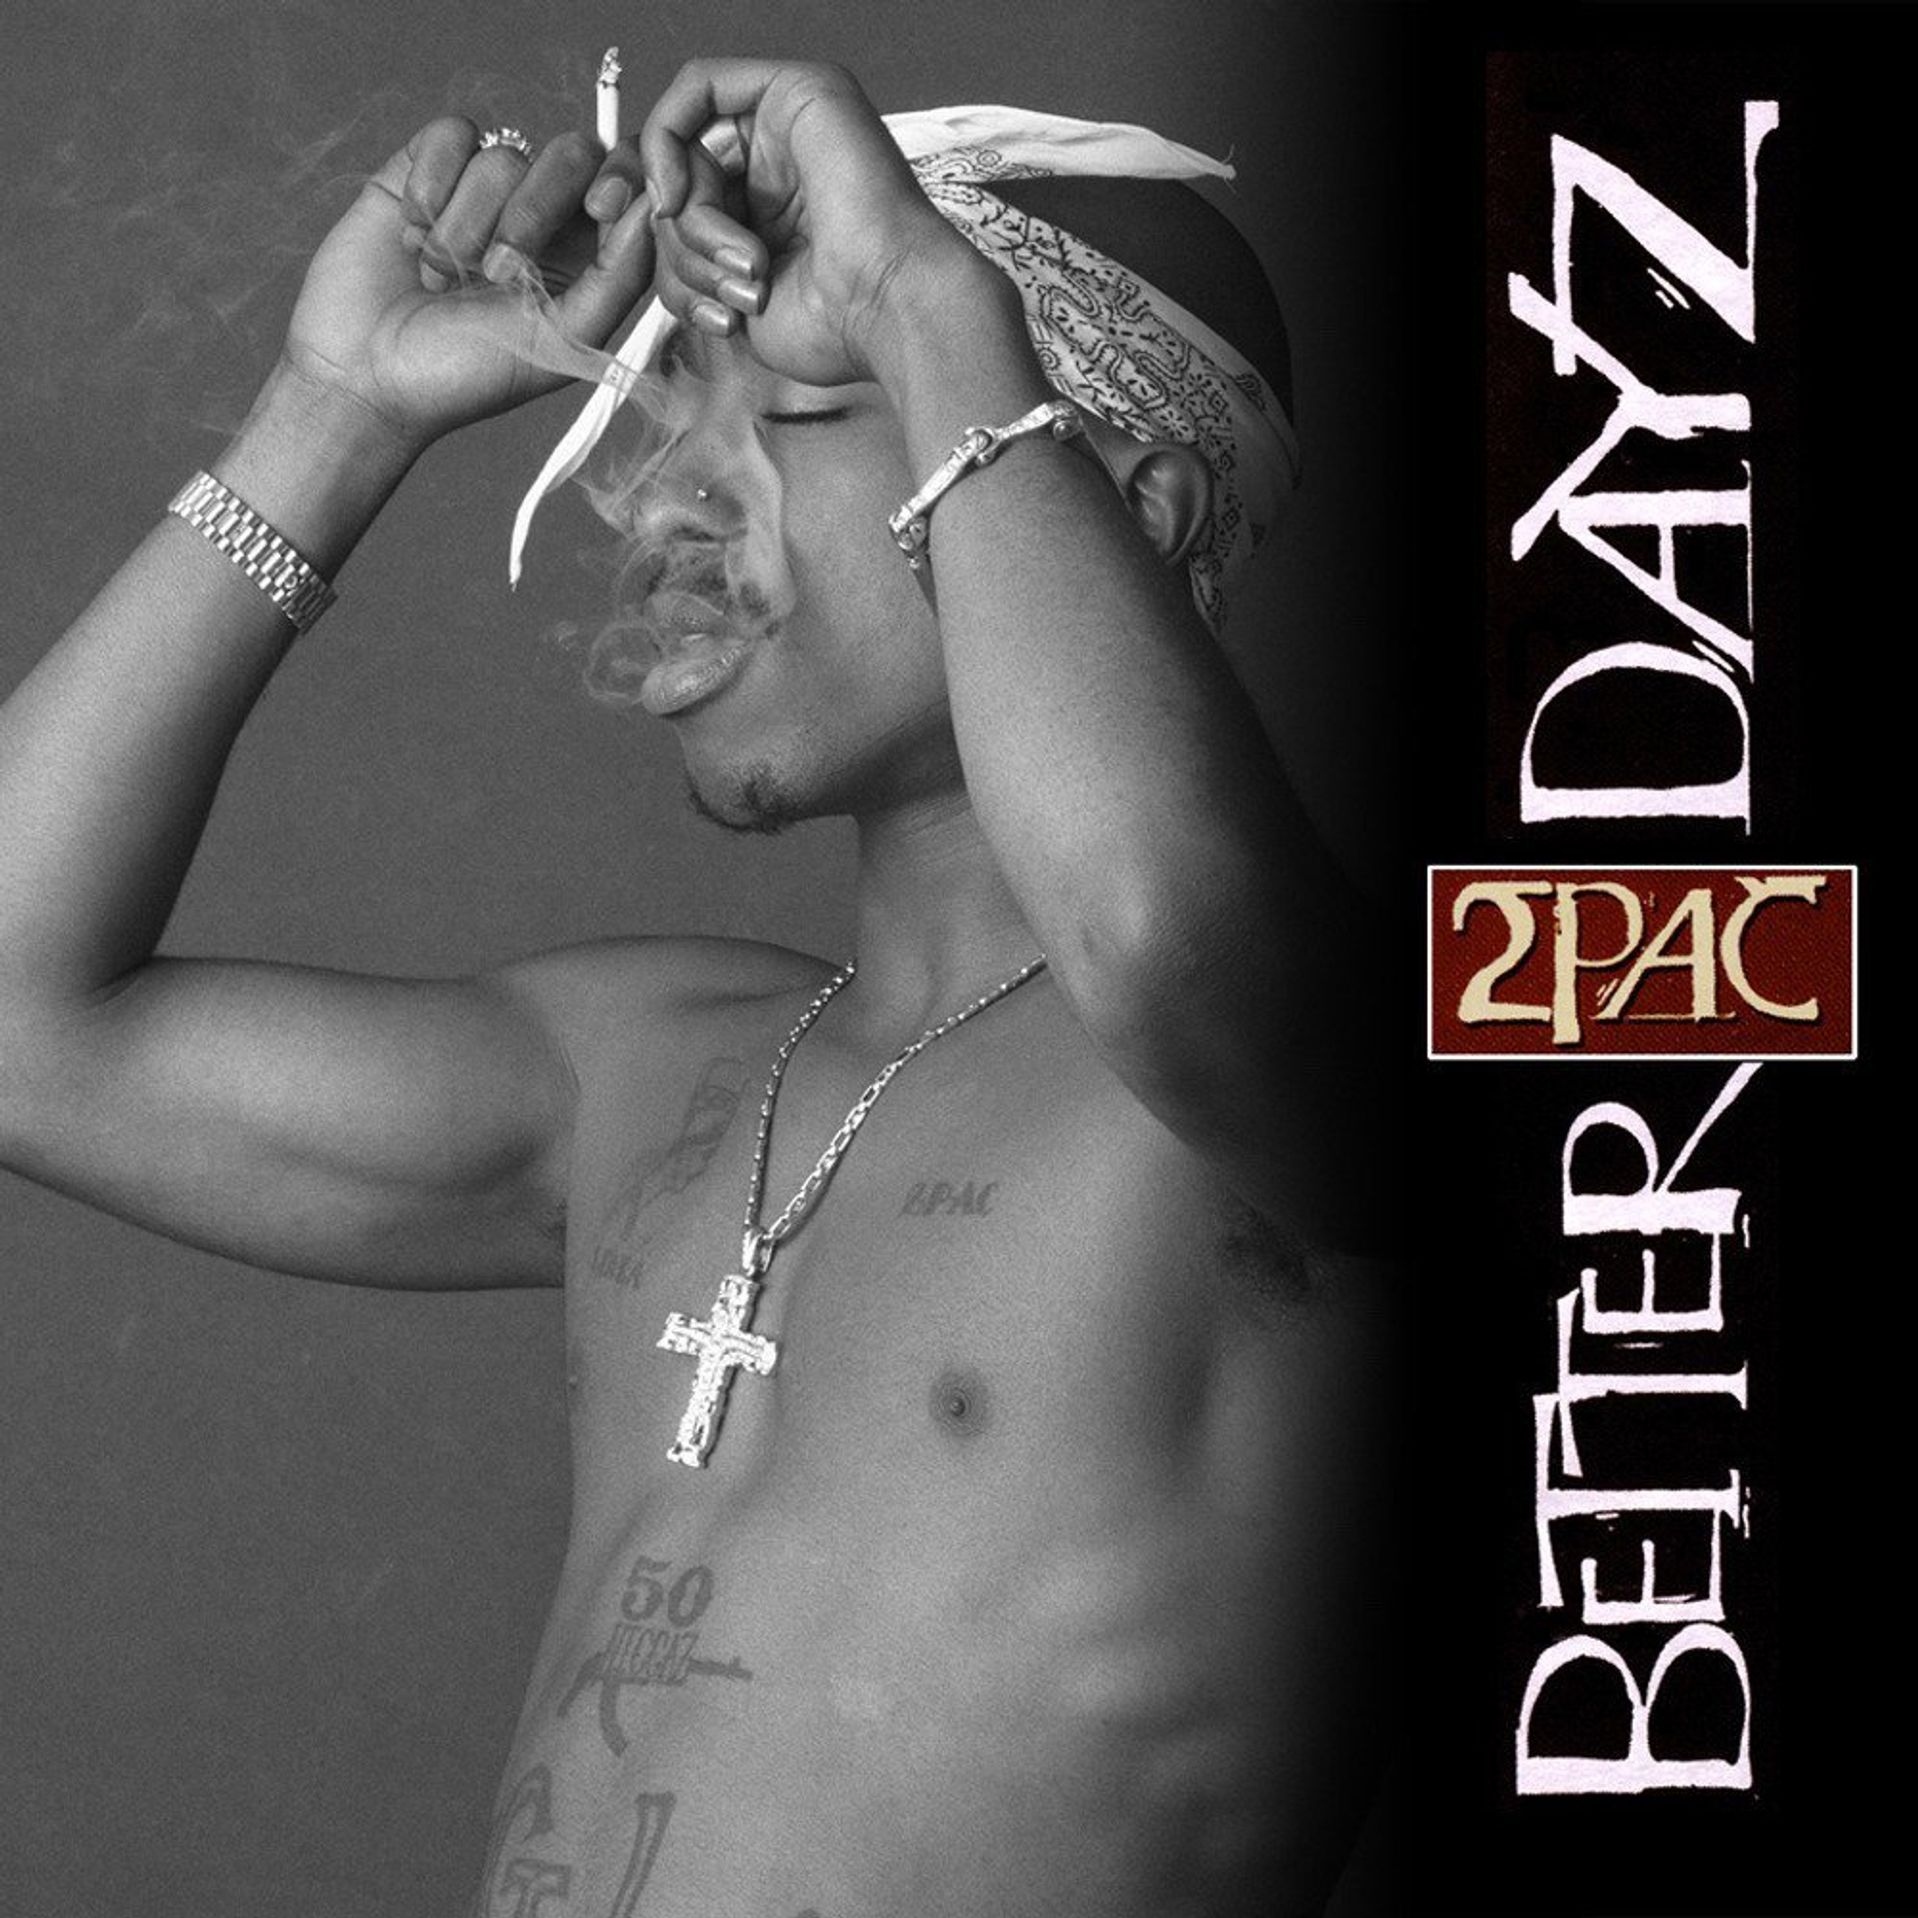 Album Title: Better Dayz by: Tupac